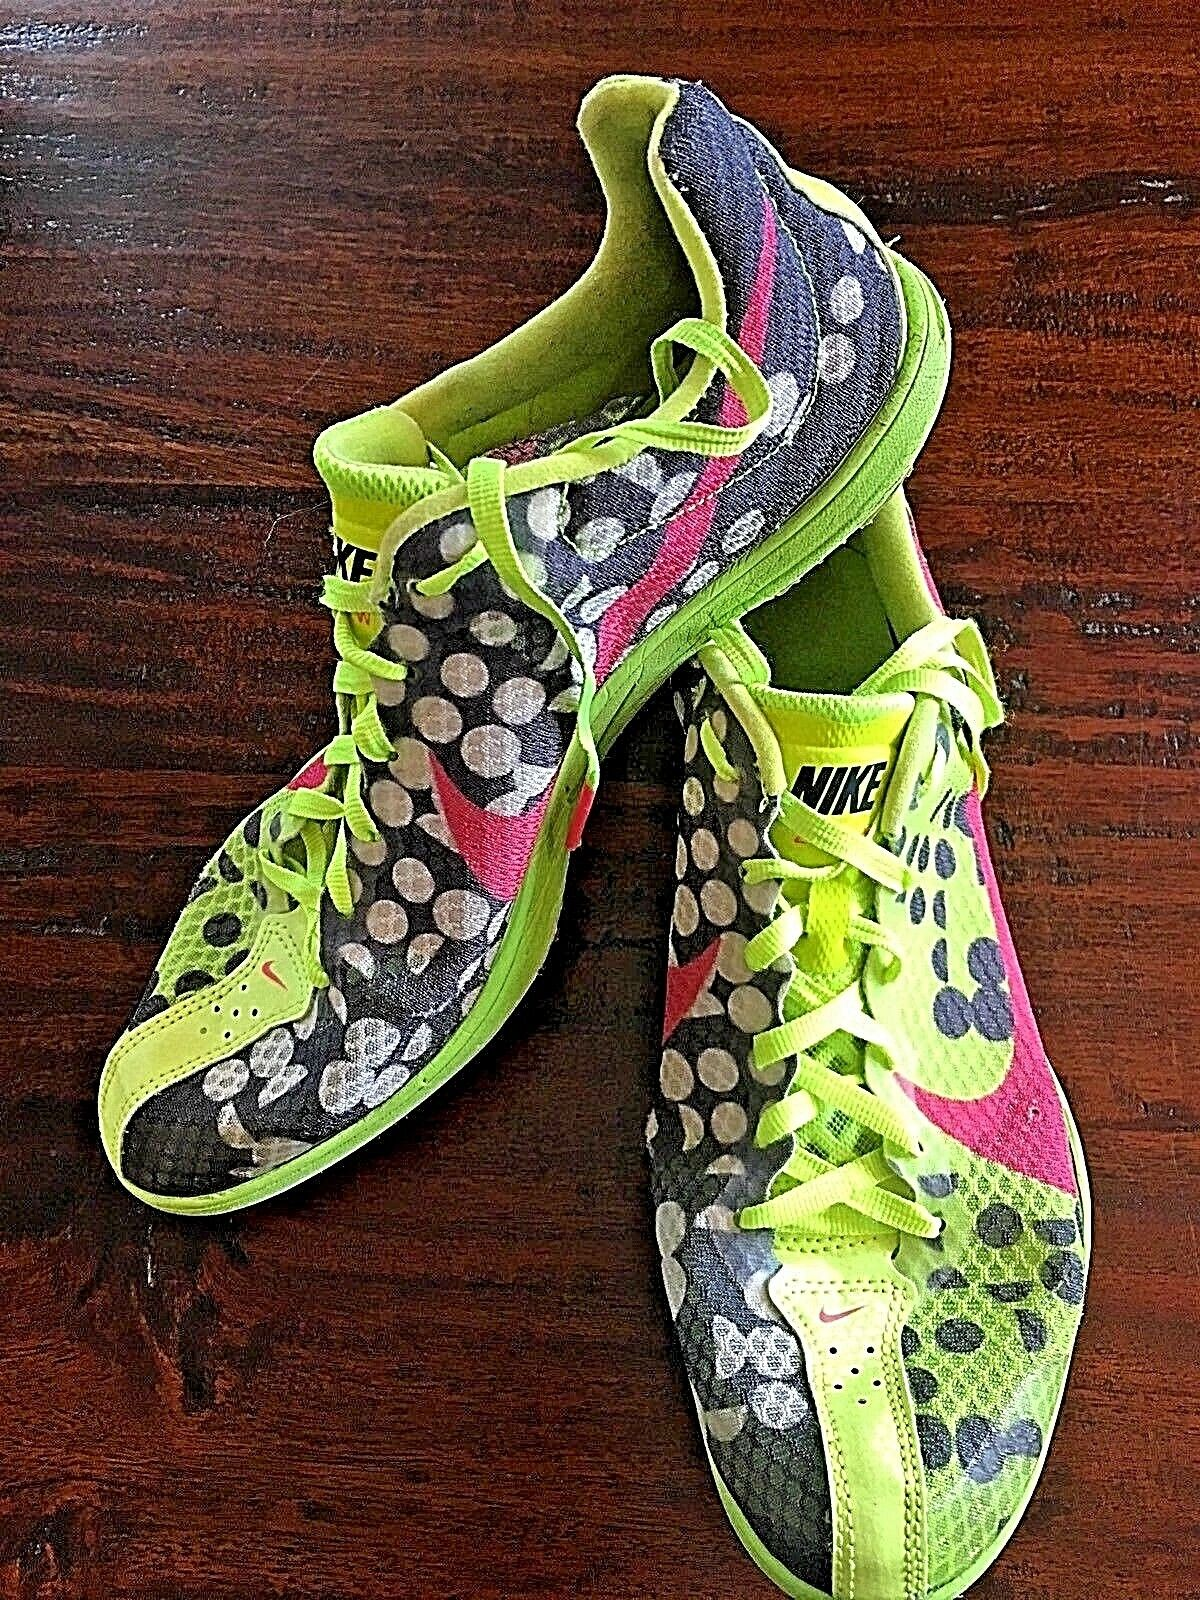 NIKE Zoom W4 Women's Distance Running NEON Track Shoes Style 553074-760 SIZE 8.5 Cheap women's shoes women's shoes